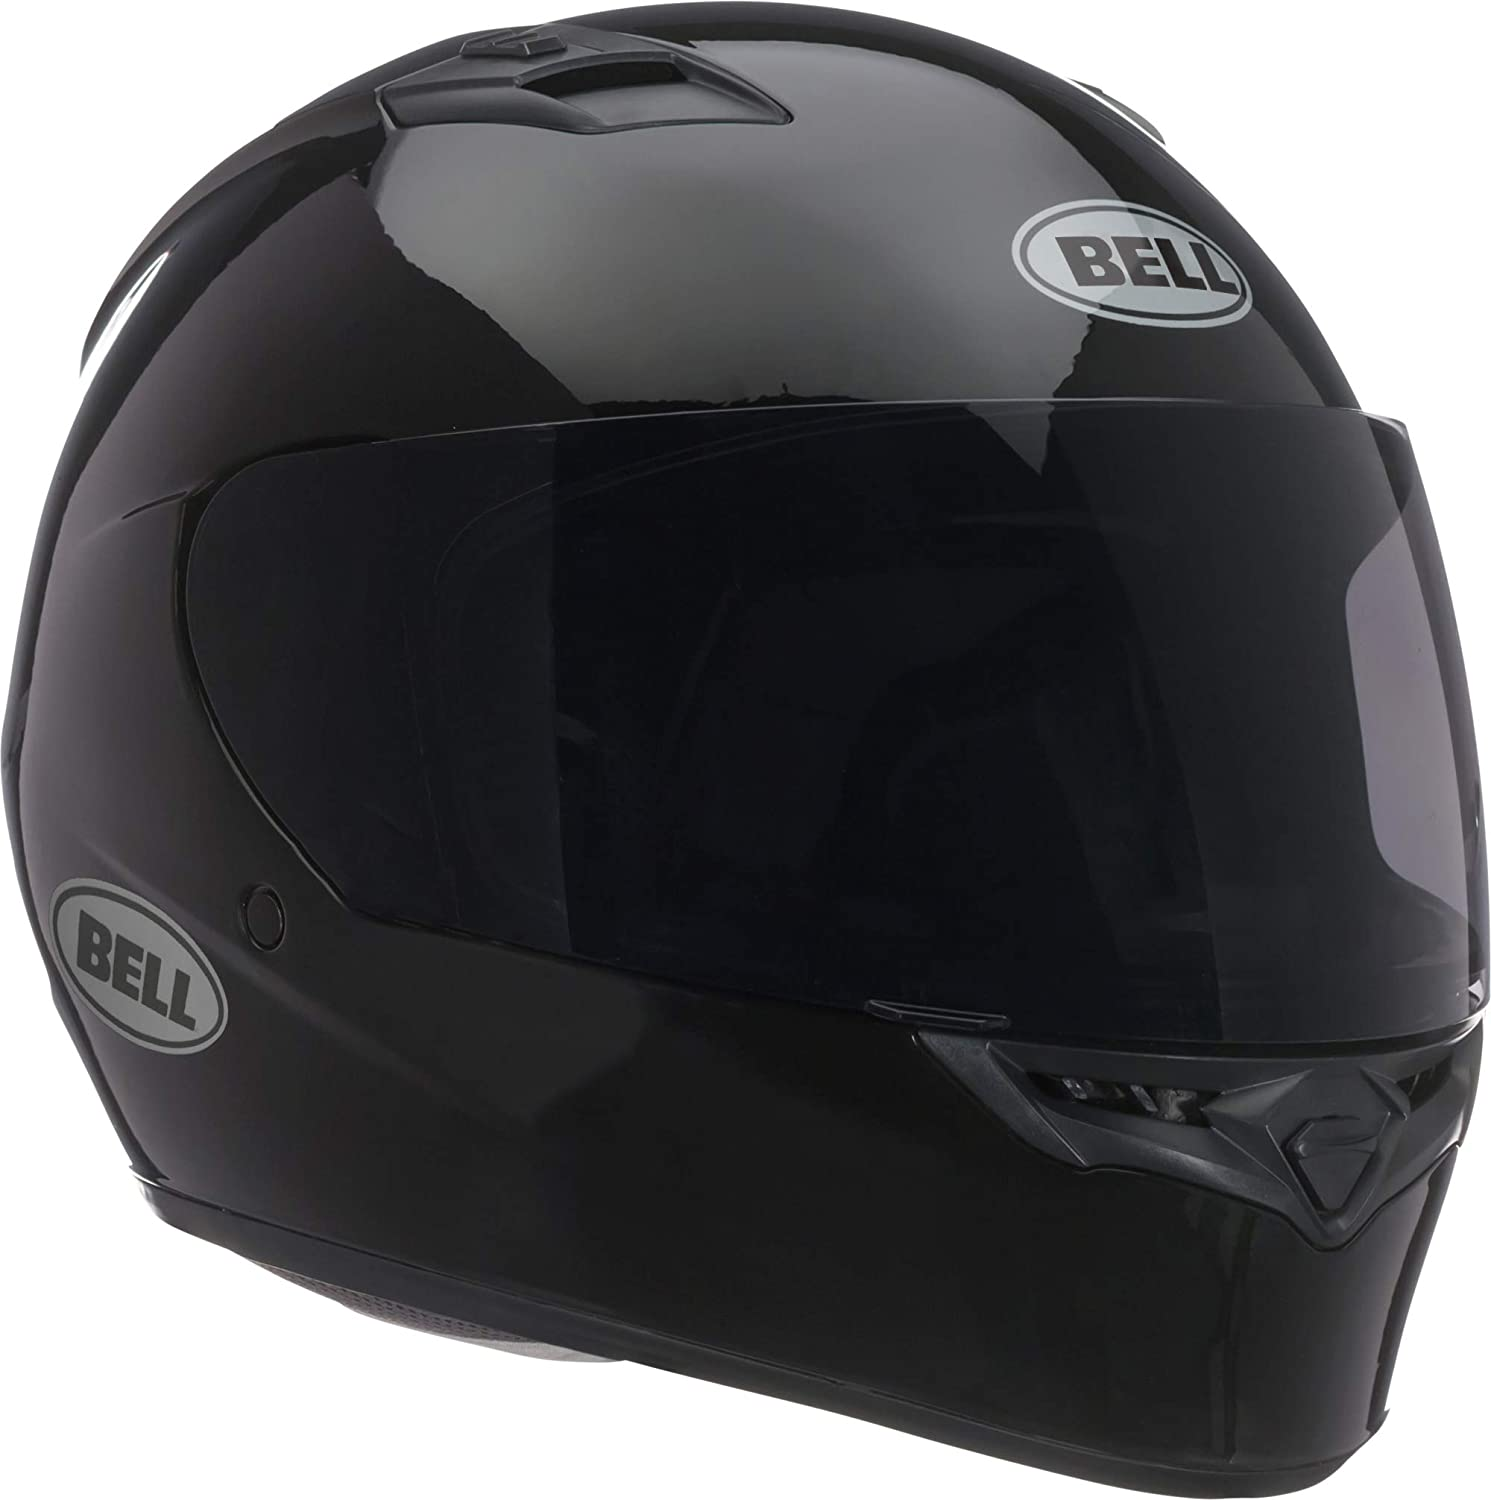 Bell Qualifier Full-Face Motorcycle Helmet (Solid Black, Large)